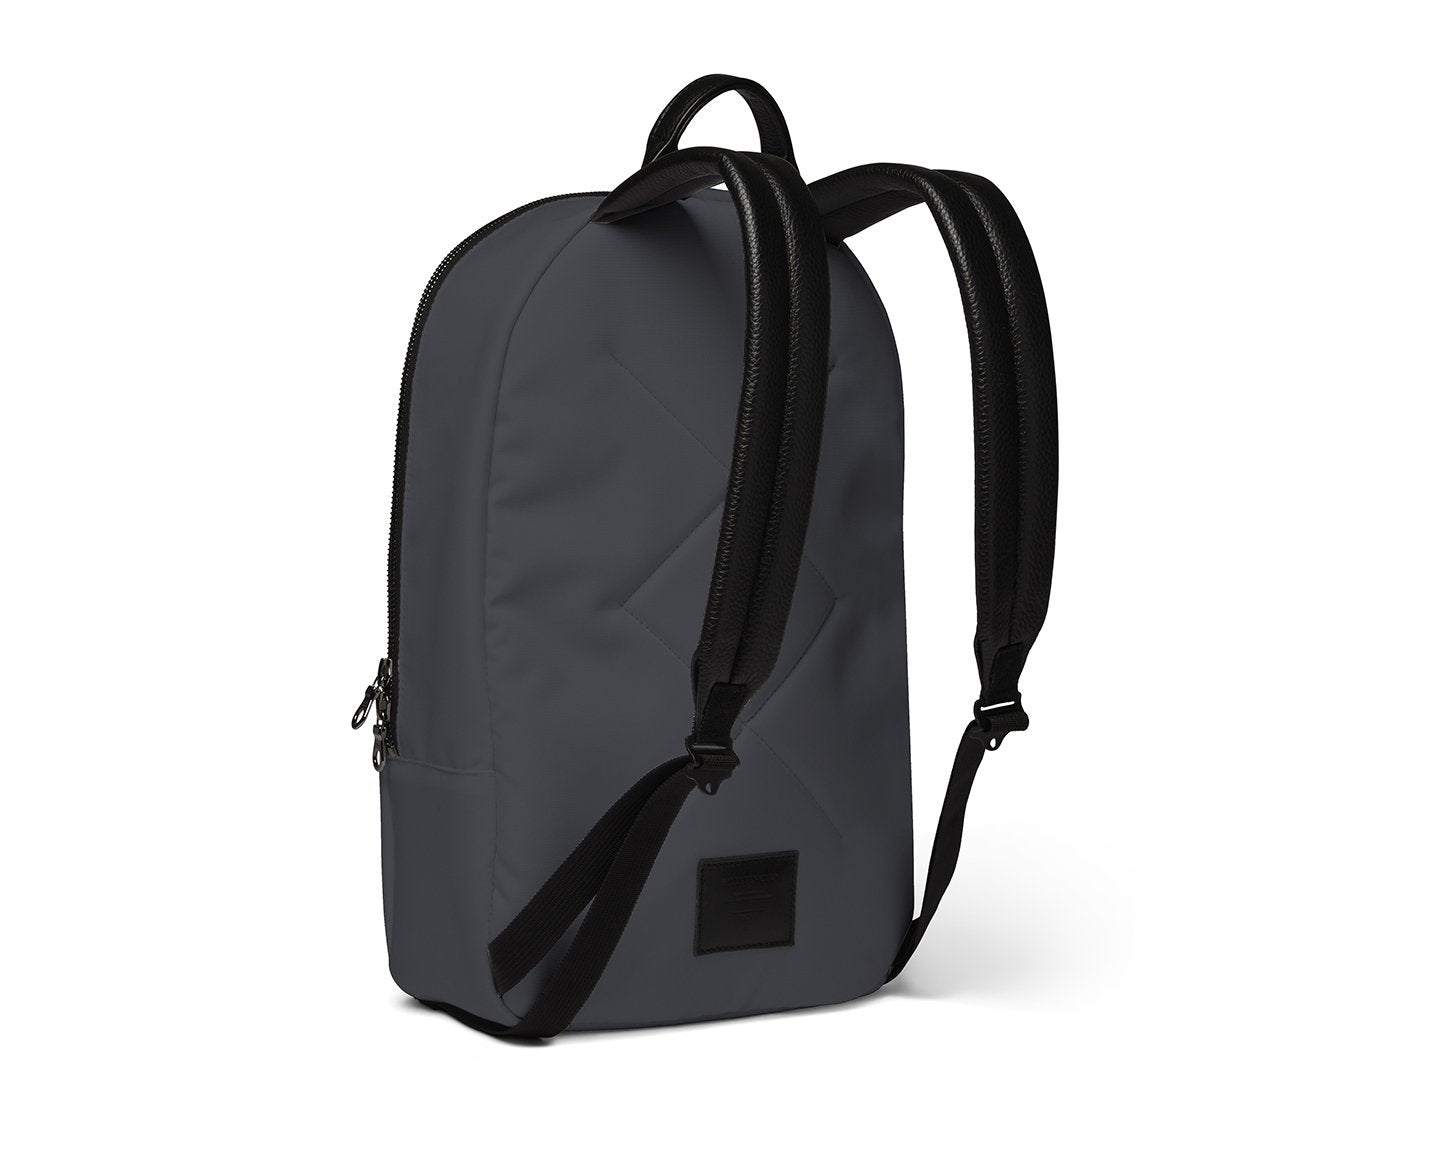 SPECIAL OPS BACKPACK 3.0 | KILLSPENCER® - Slate Nylon